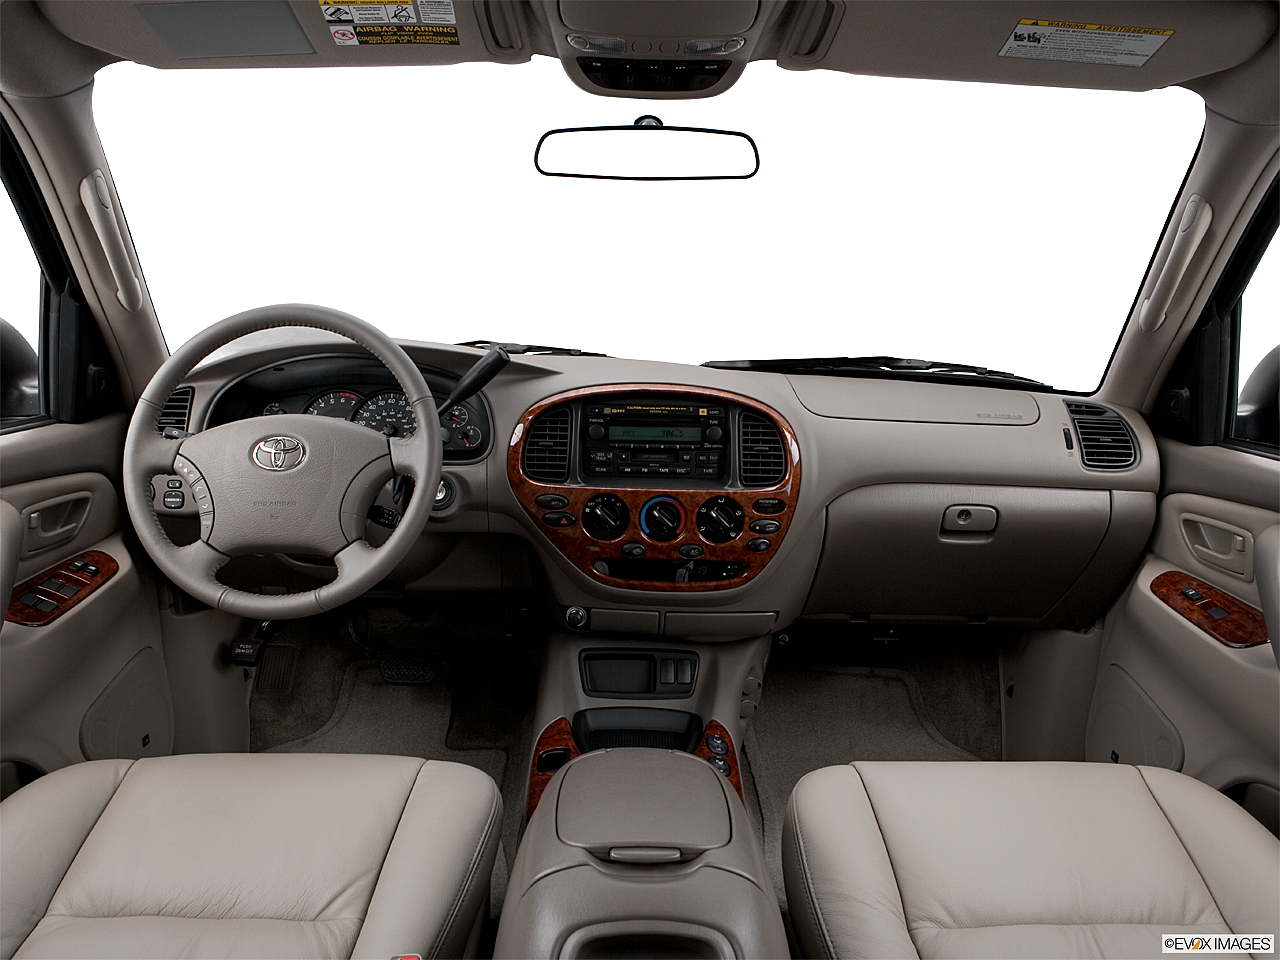 2006 Toyota Tundra Limited, centered wide dash shot